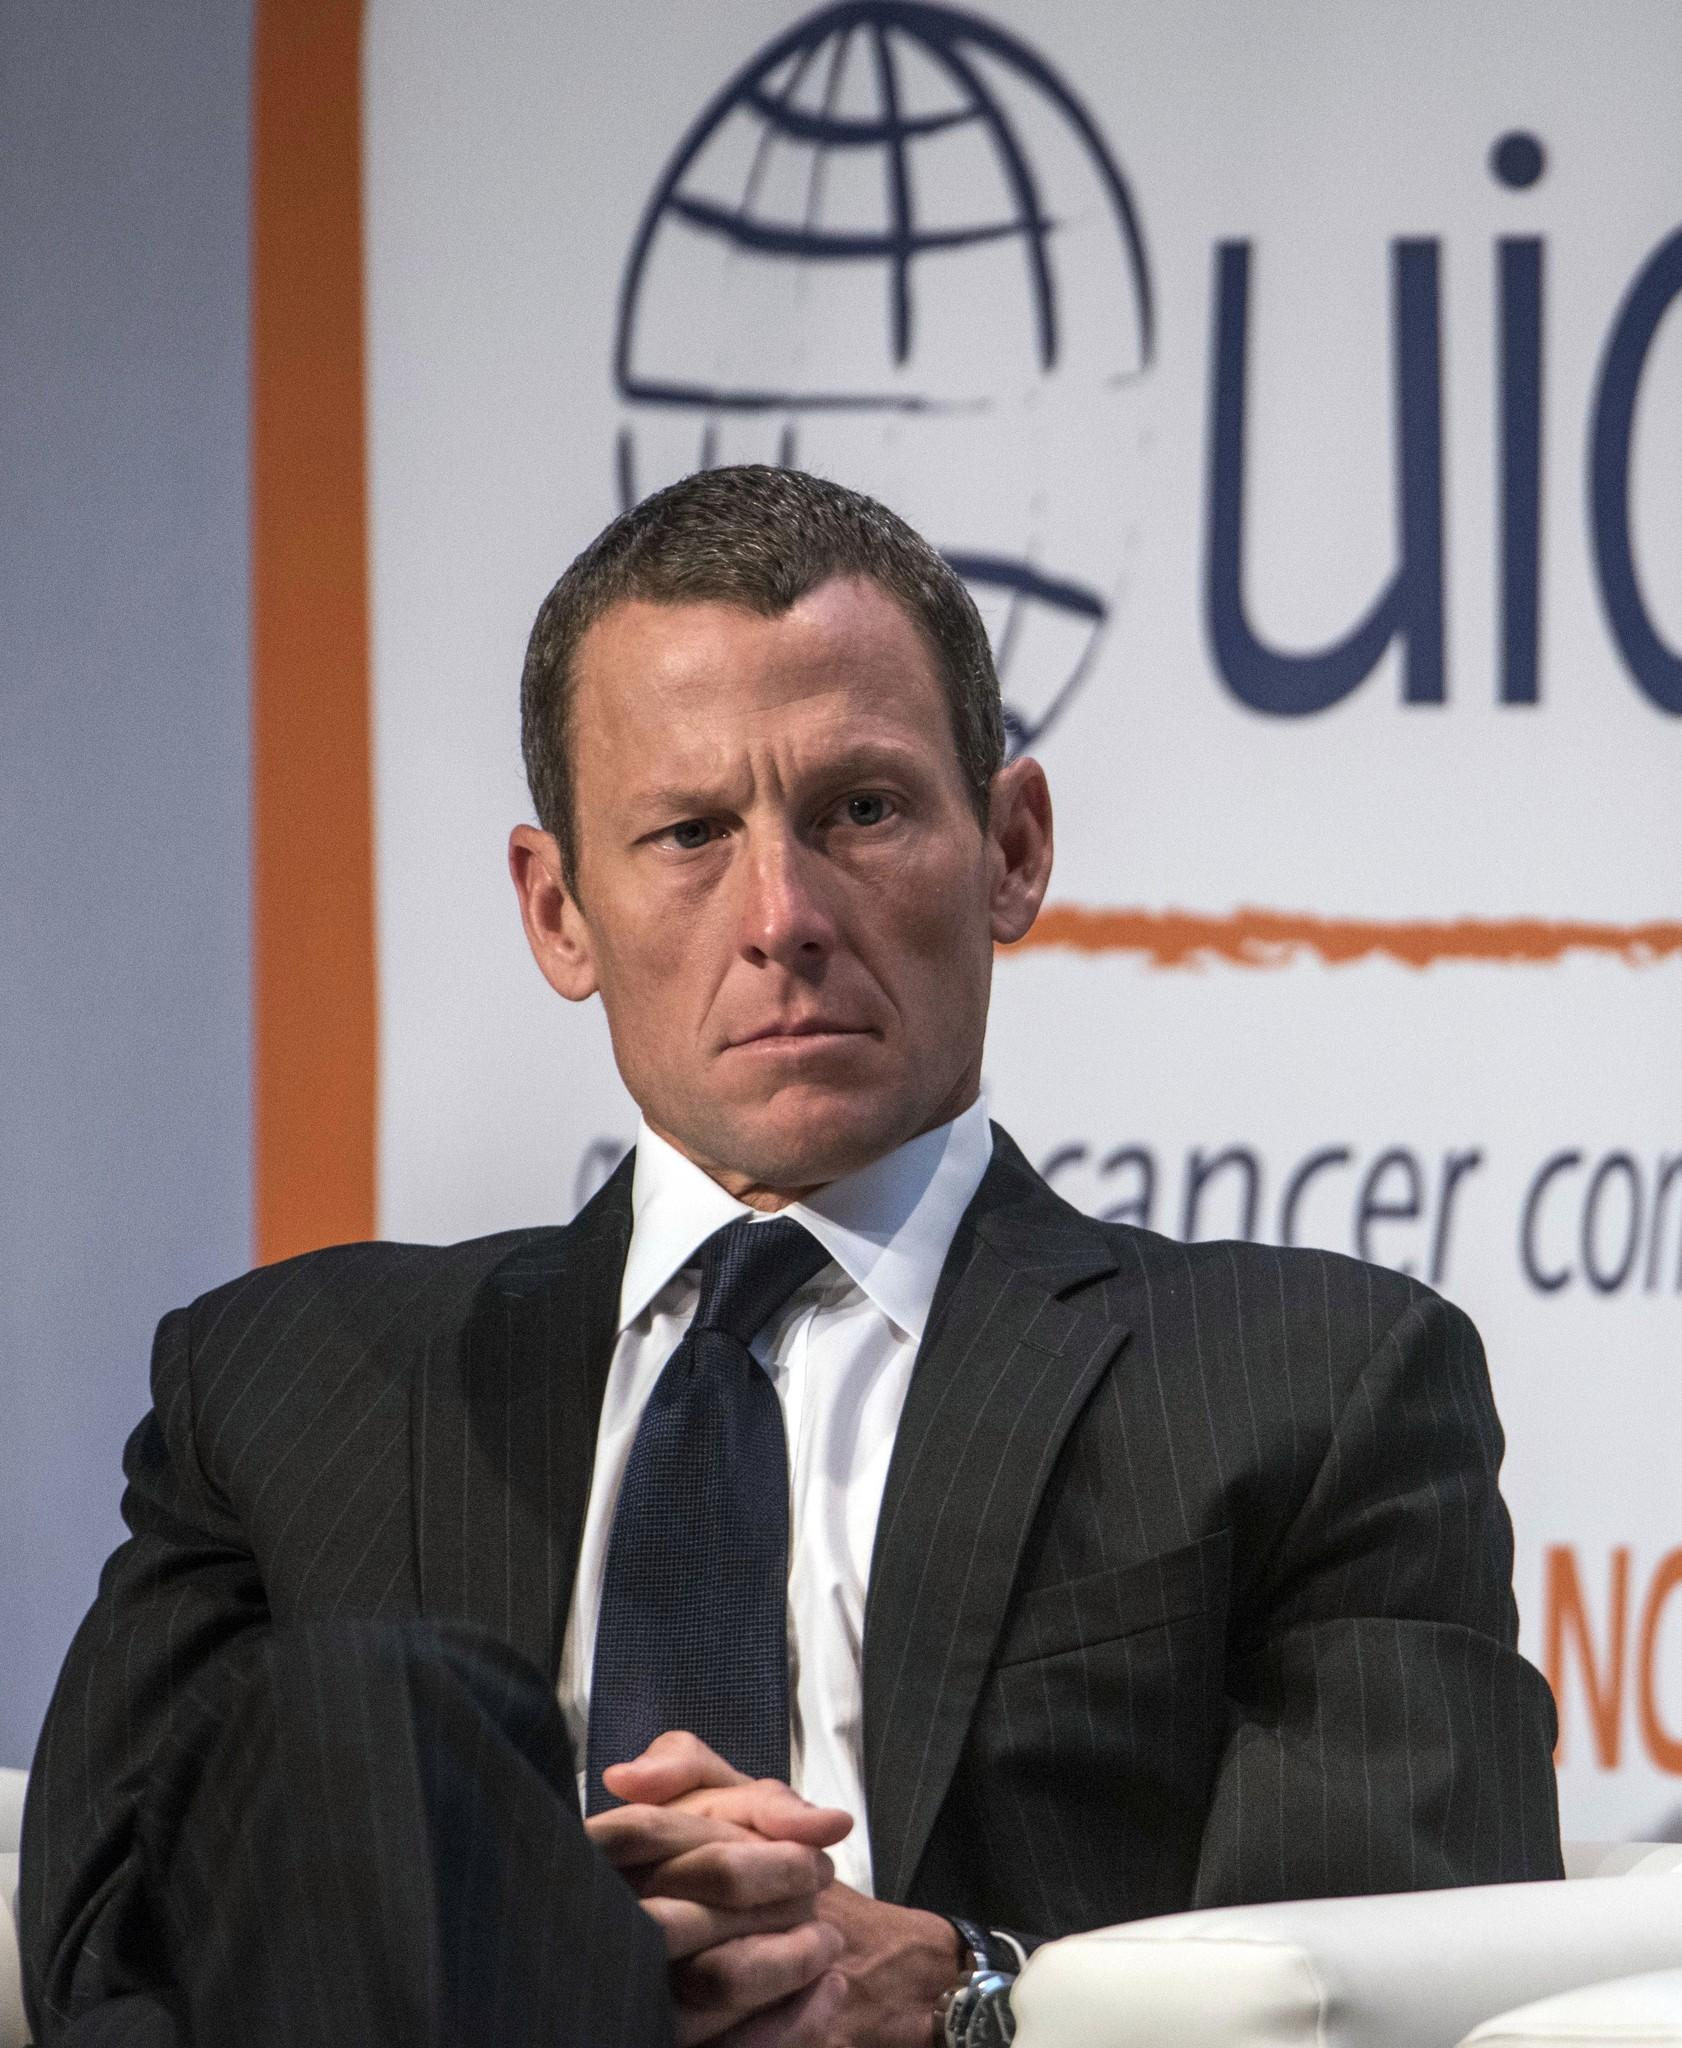 Lance Armstrong, chairman and founder at LIVESTRONG, speaks about Survivorship: changing the way the world fights cancer, during the World Cancer Congress, held August 29 2012 in Montreal, Quebec.